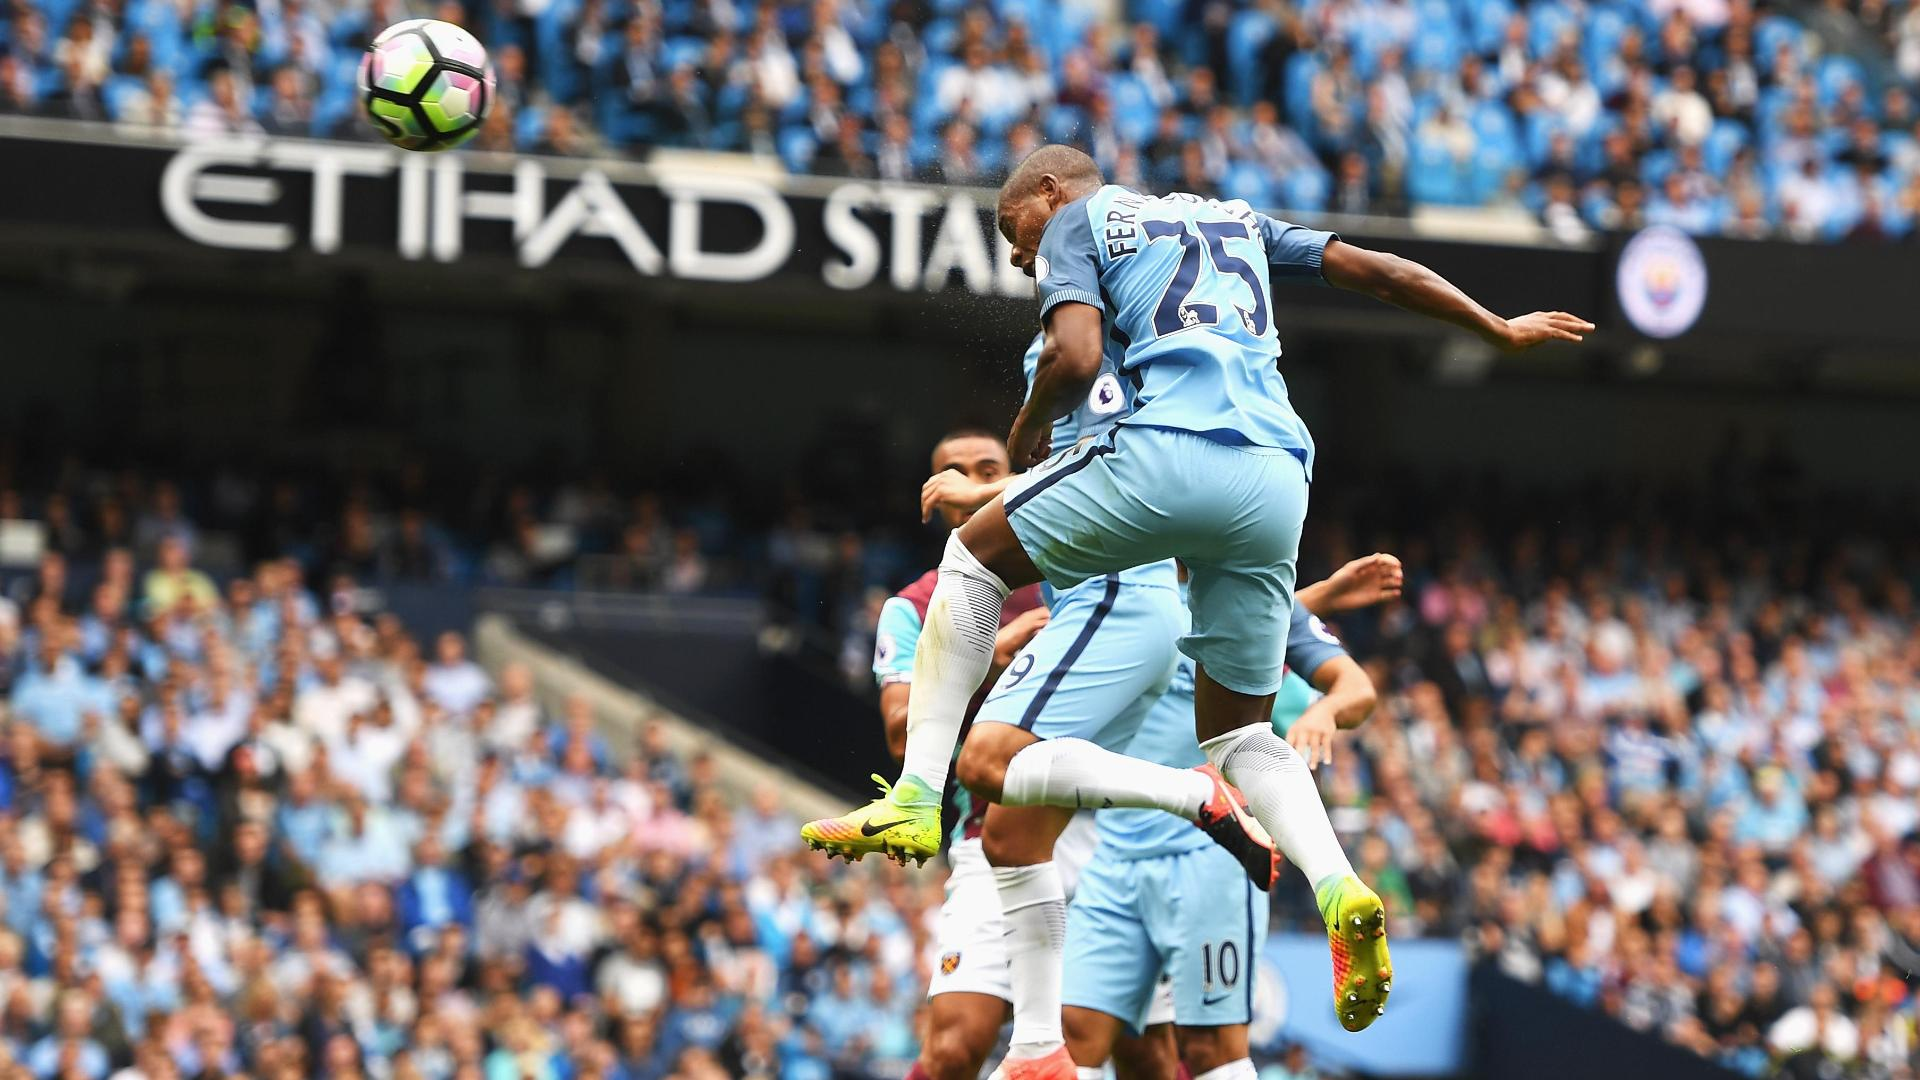 Fernandinho's powerful header gives Manchester City 2-0 lead